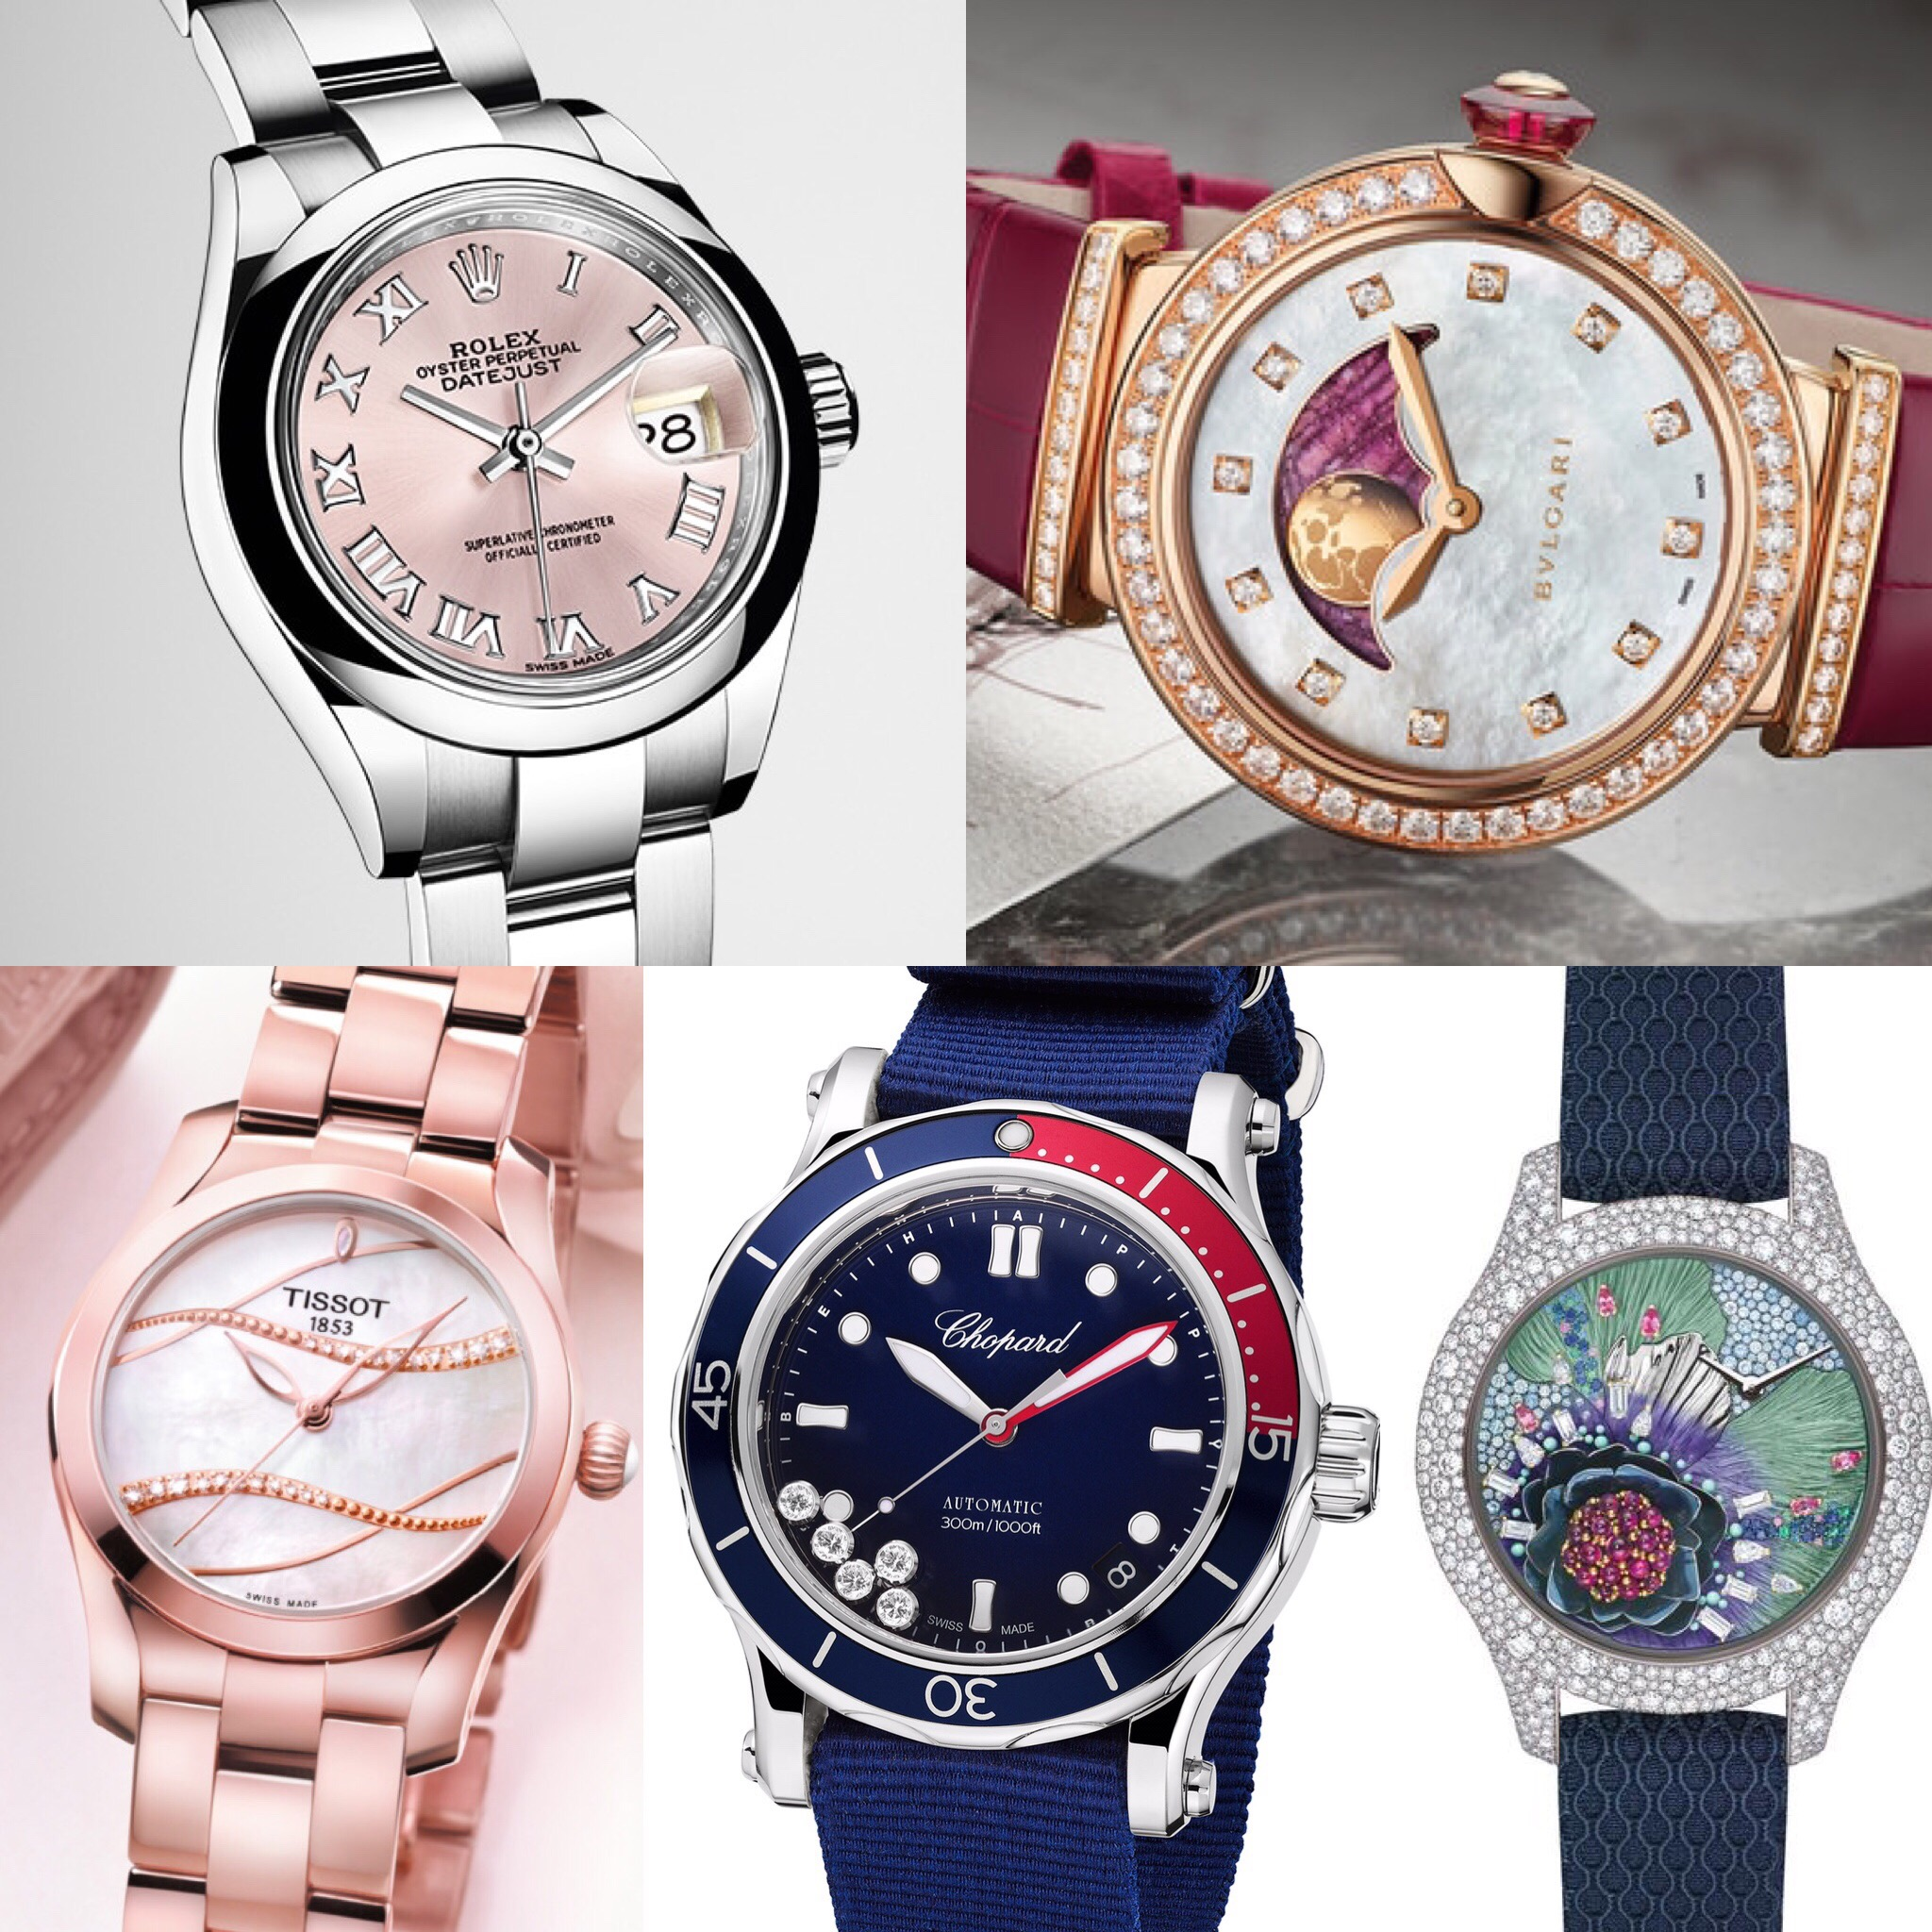 blog multiple dial is that introduction seiko unique to grand a of celebrate case amazing baselworld the first new three and anniversary caliber announces feature watches up